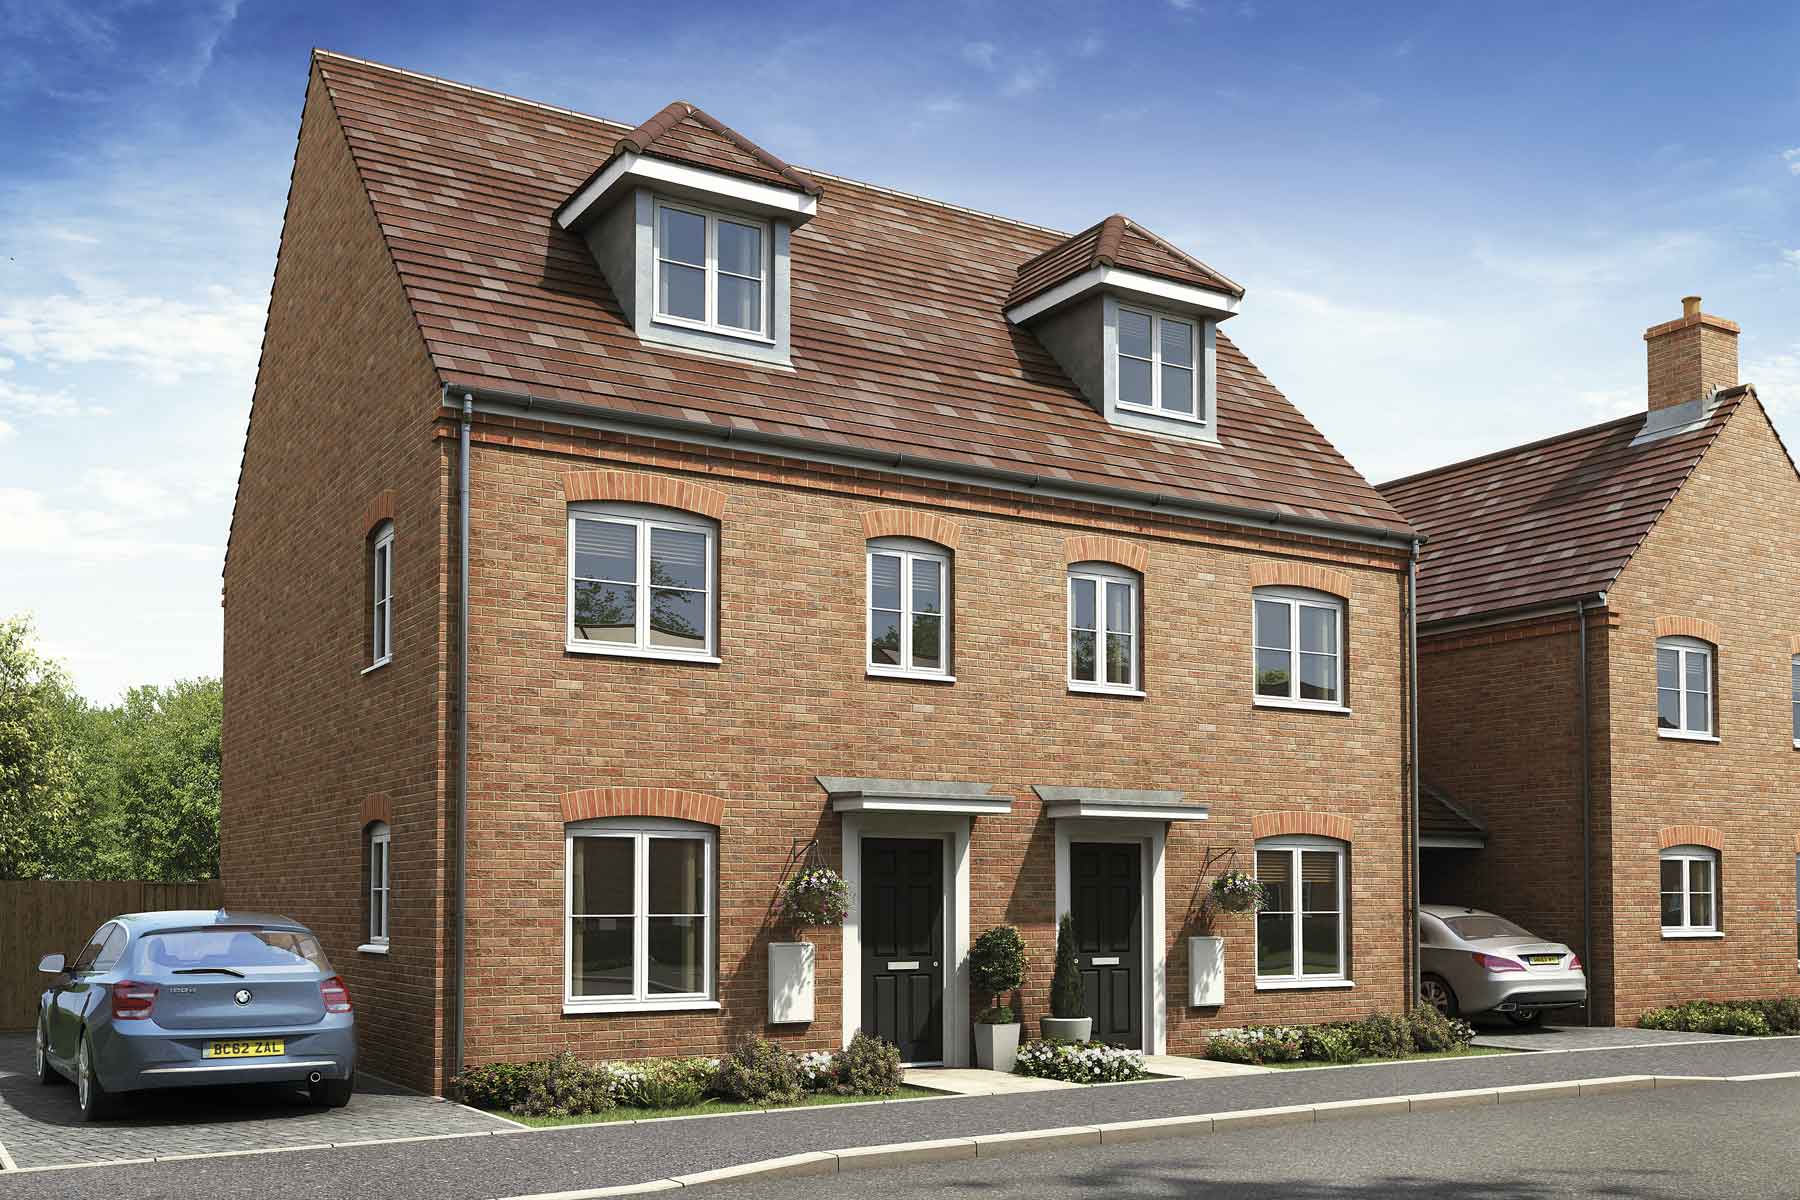 Artist's impression of a typical Crofton G home